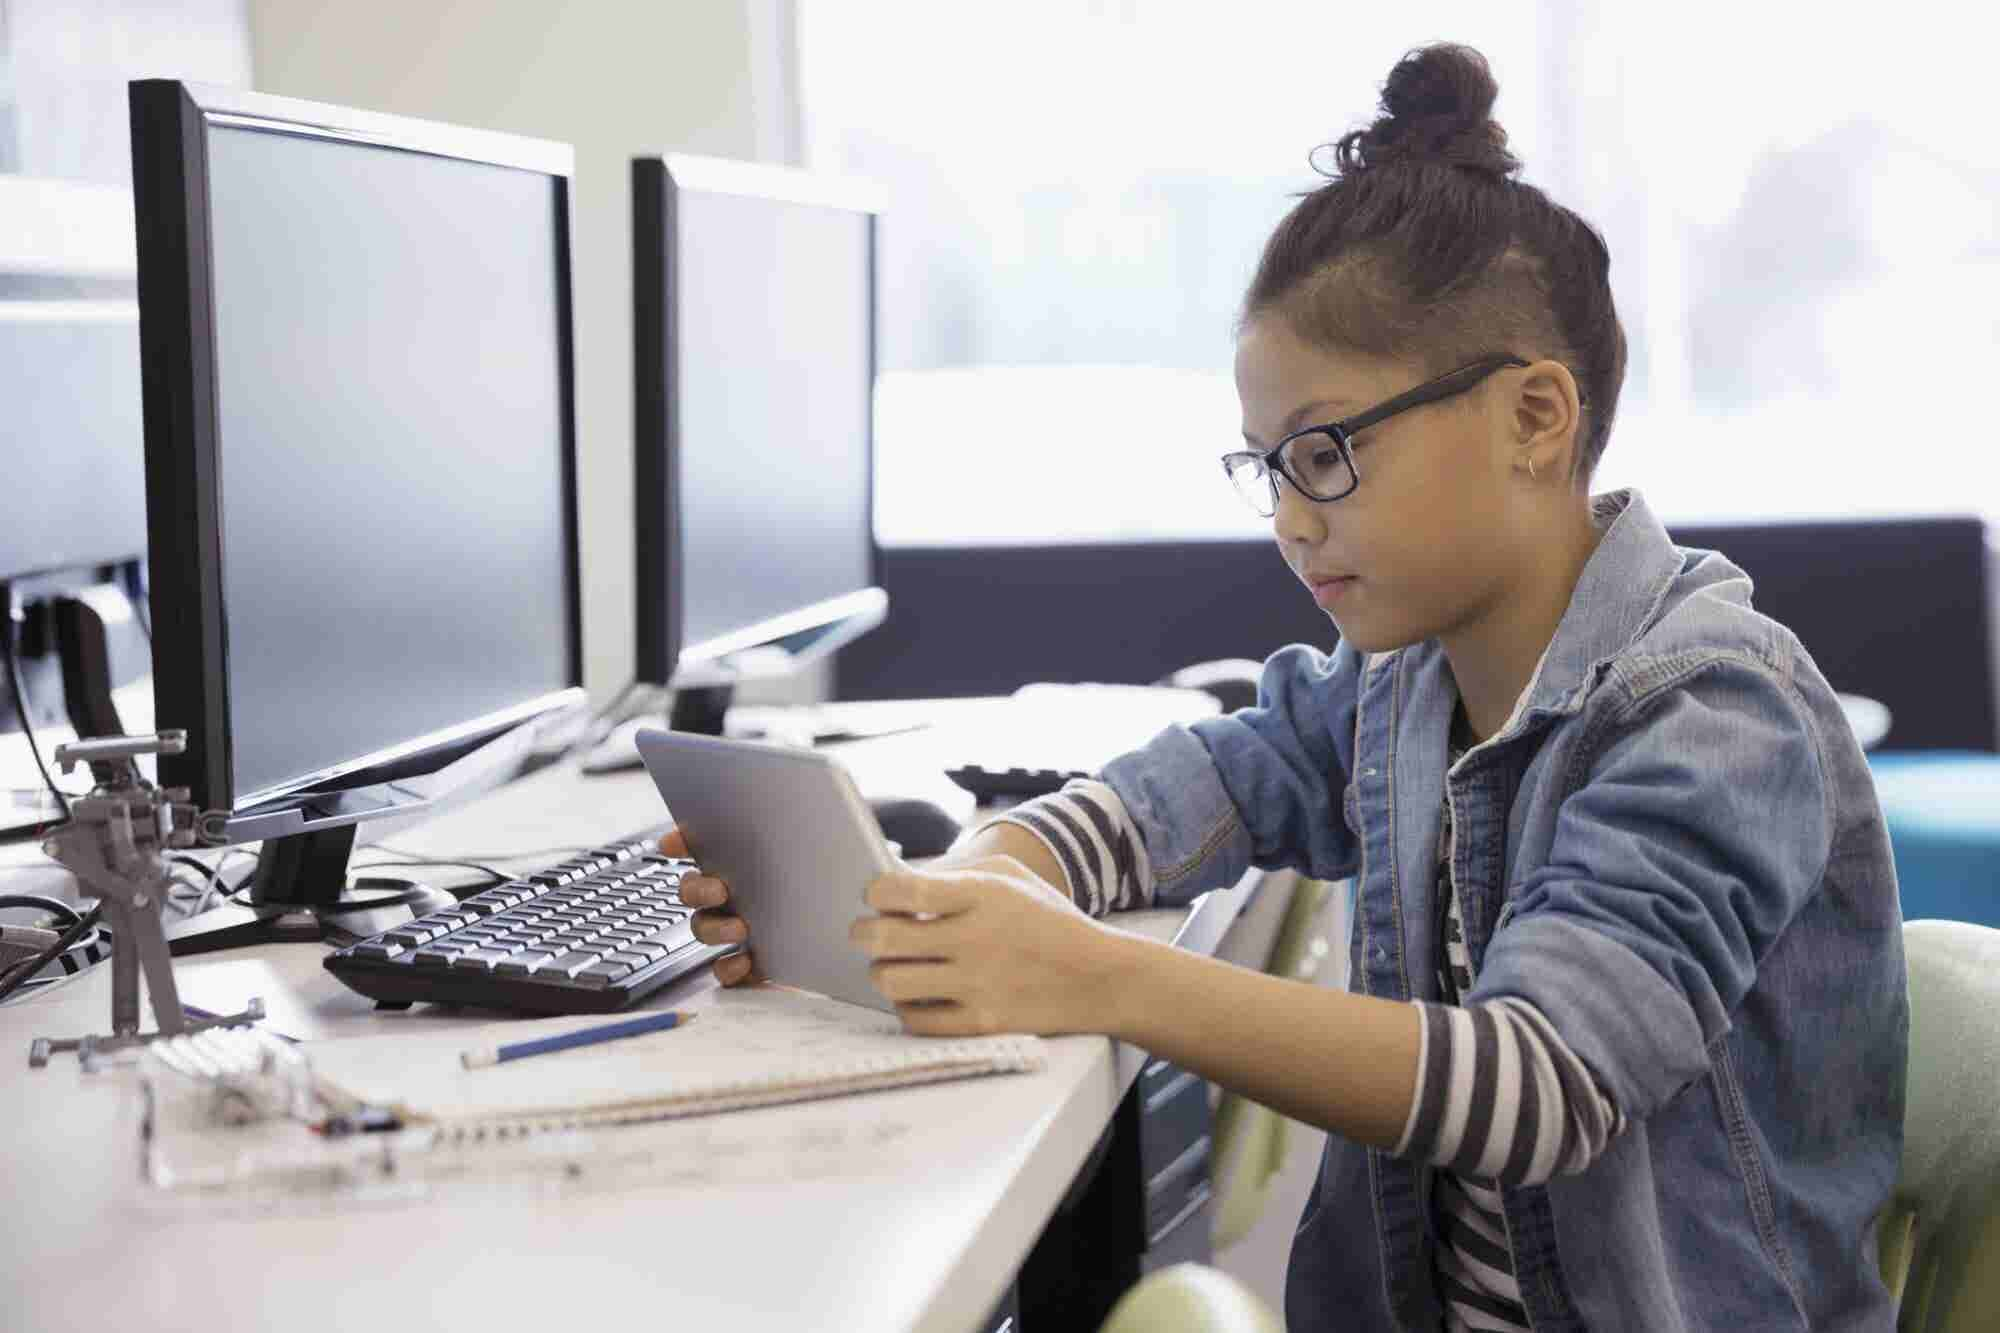 There's a Massive Gender Gap in AI, but Tech Education Programs for Young Girls Aim to Close It